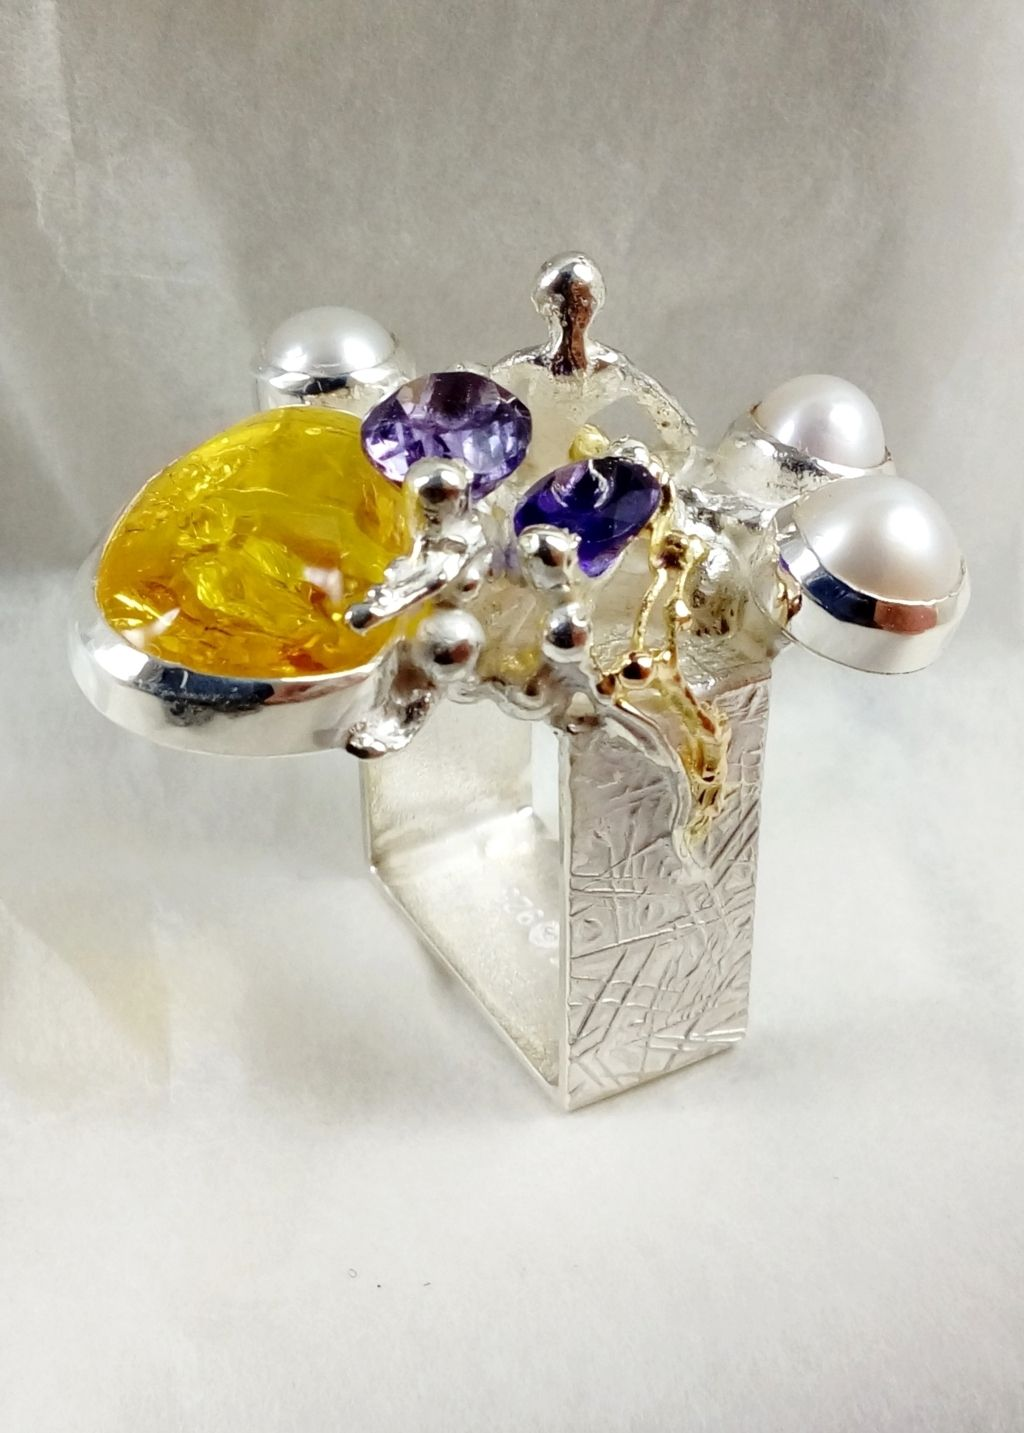 gregory pyra piro square ring #5631, sculptural jewellery, sculptural ring, sterling silver and 14k gold artisan jewellery, ring with two amethysts and pearl, jewellery with amber and amethysts, sterling silver and 14 karat gold ring